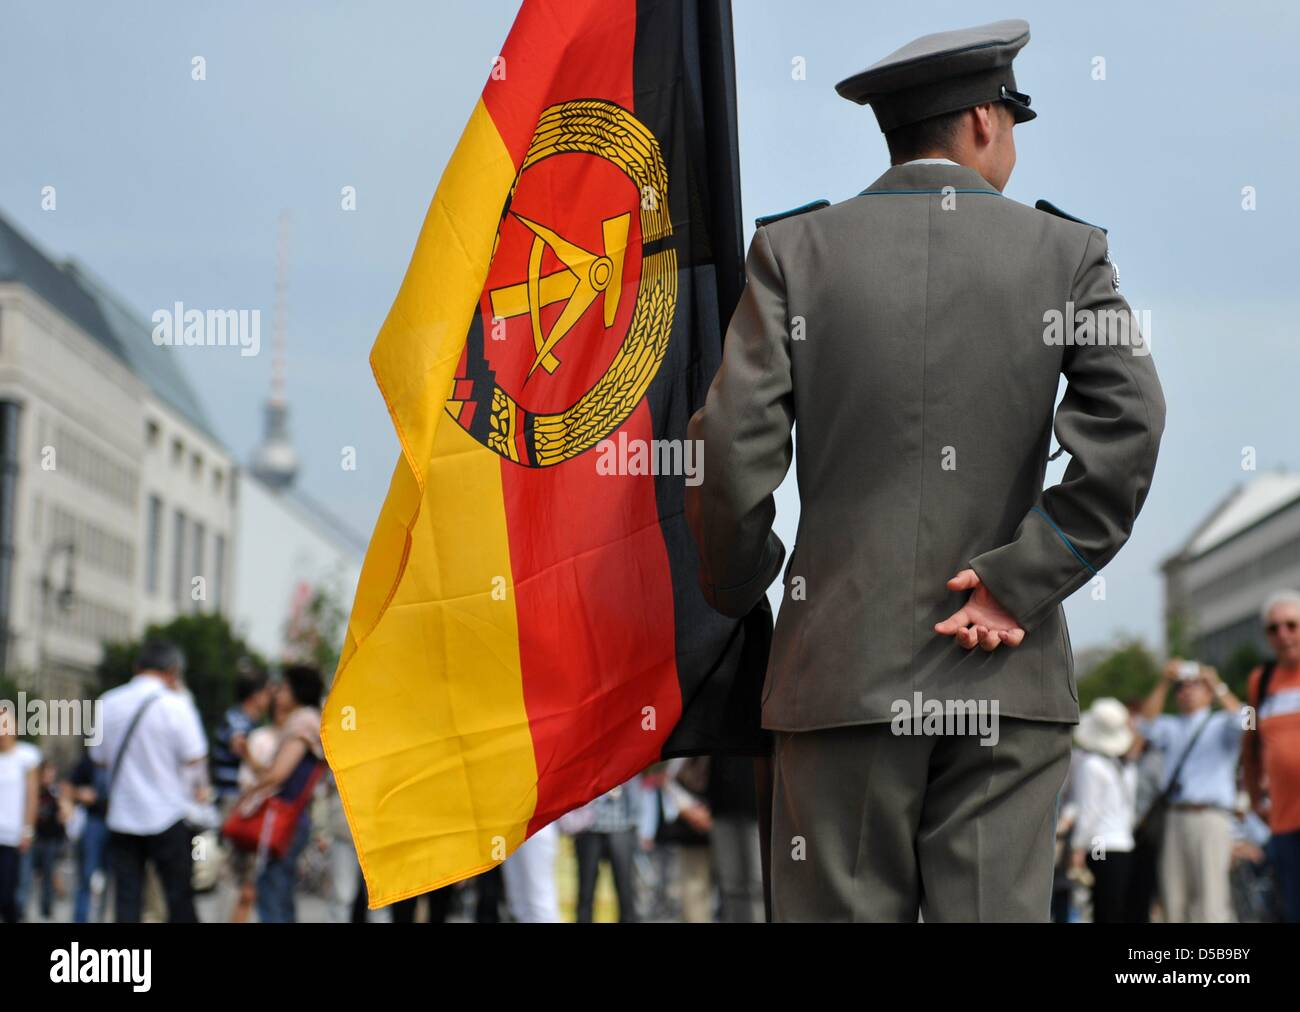 A man clad in an East German army uniform poses with a GDR